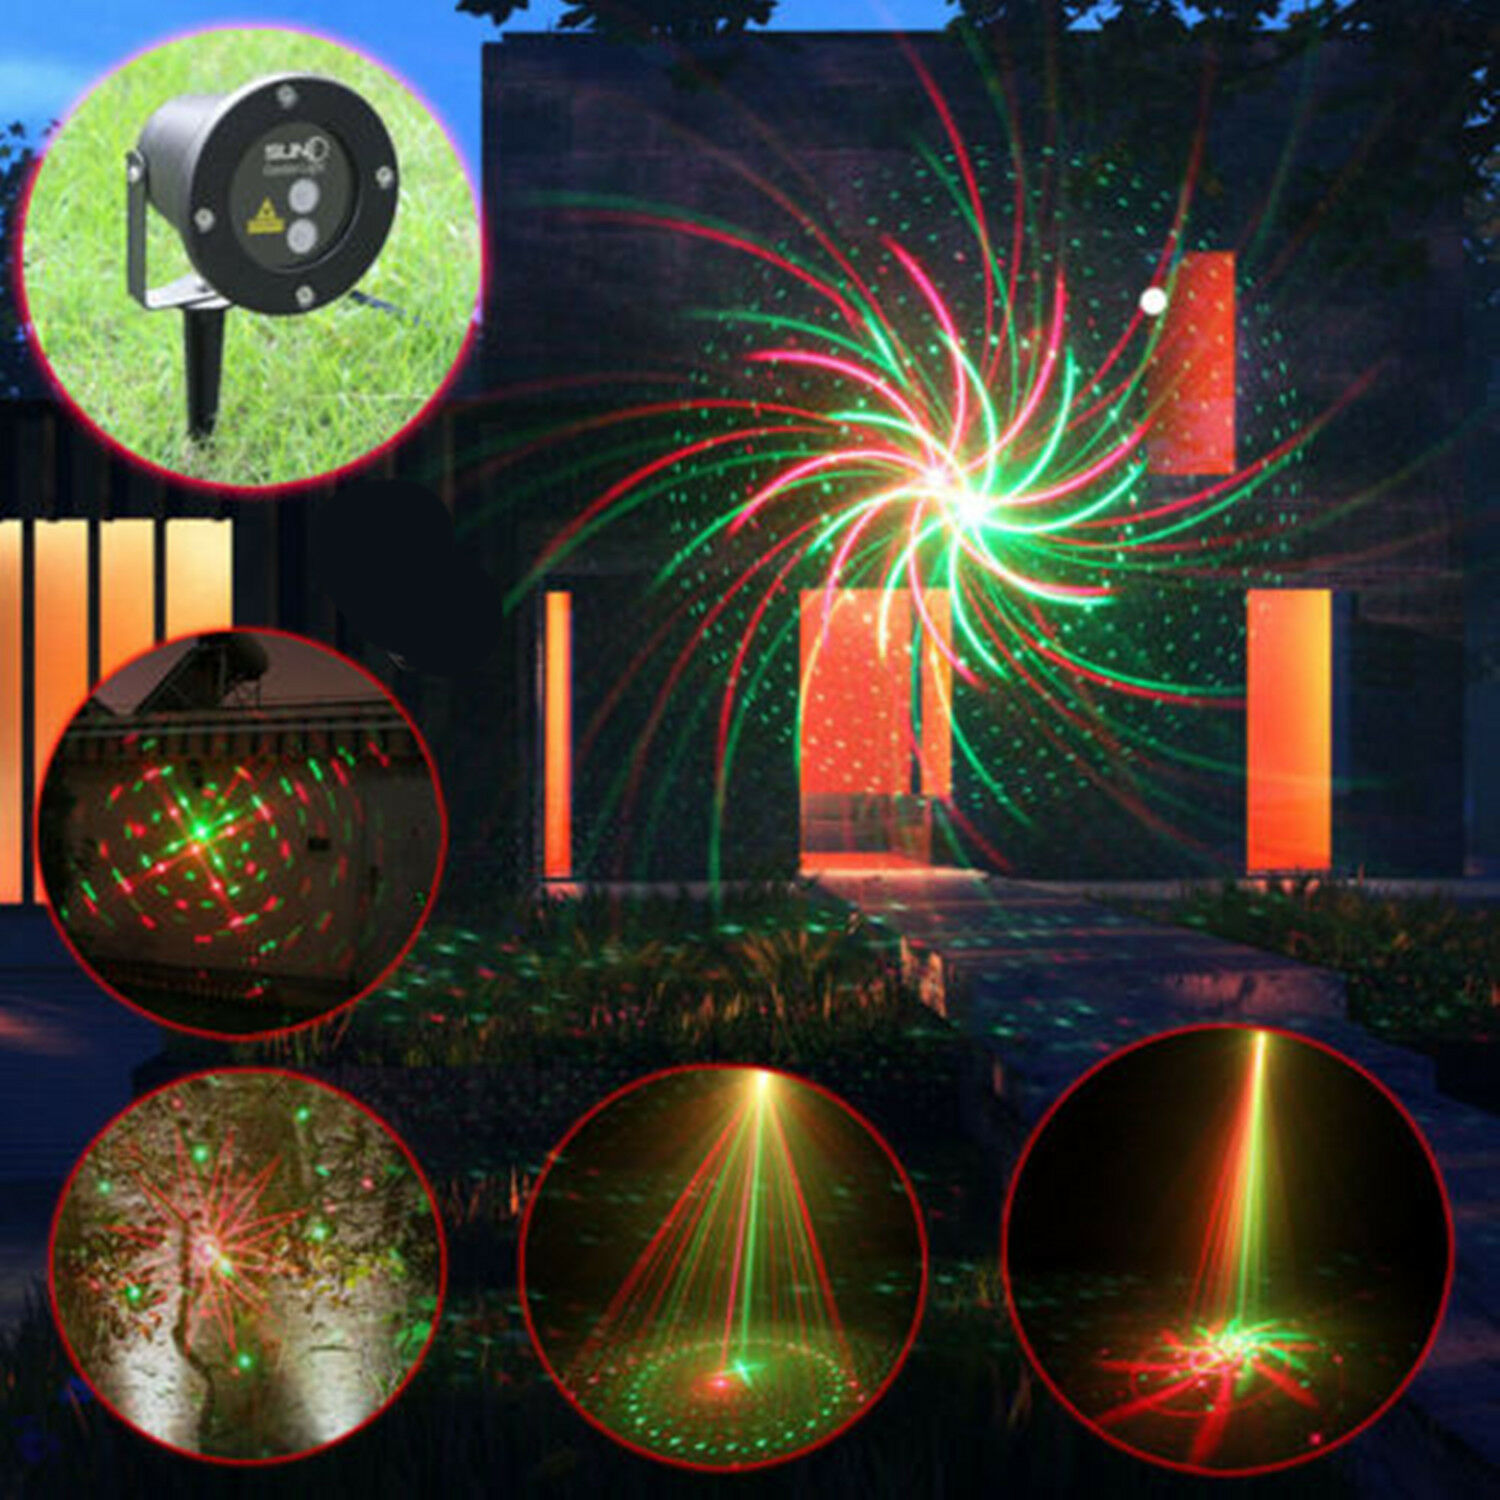 LED Laser Light RED GREEN MOTION Projector Outdoor Garden Christmas Lighting AU!